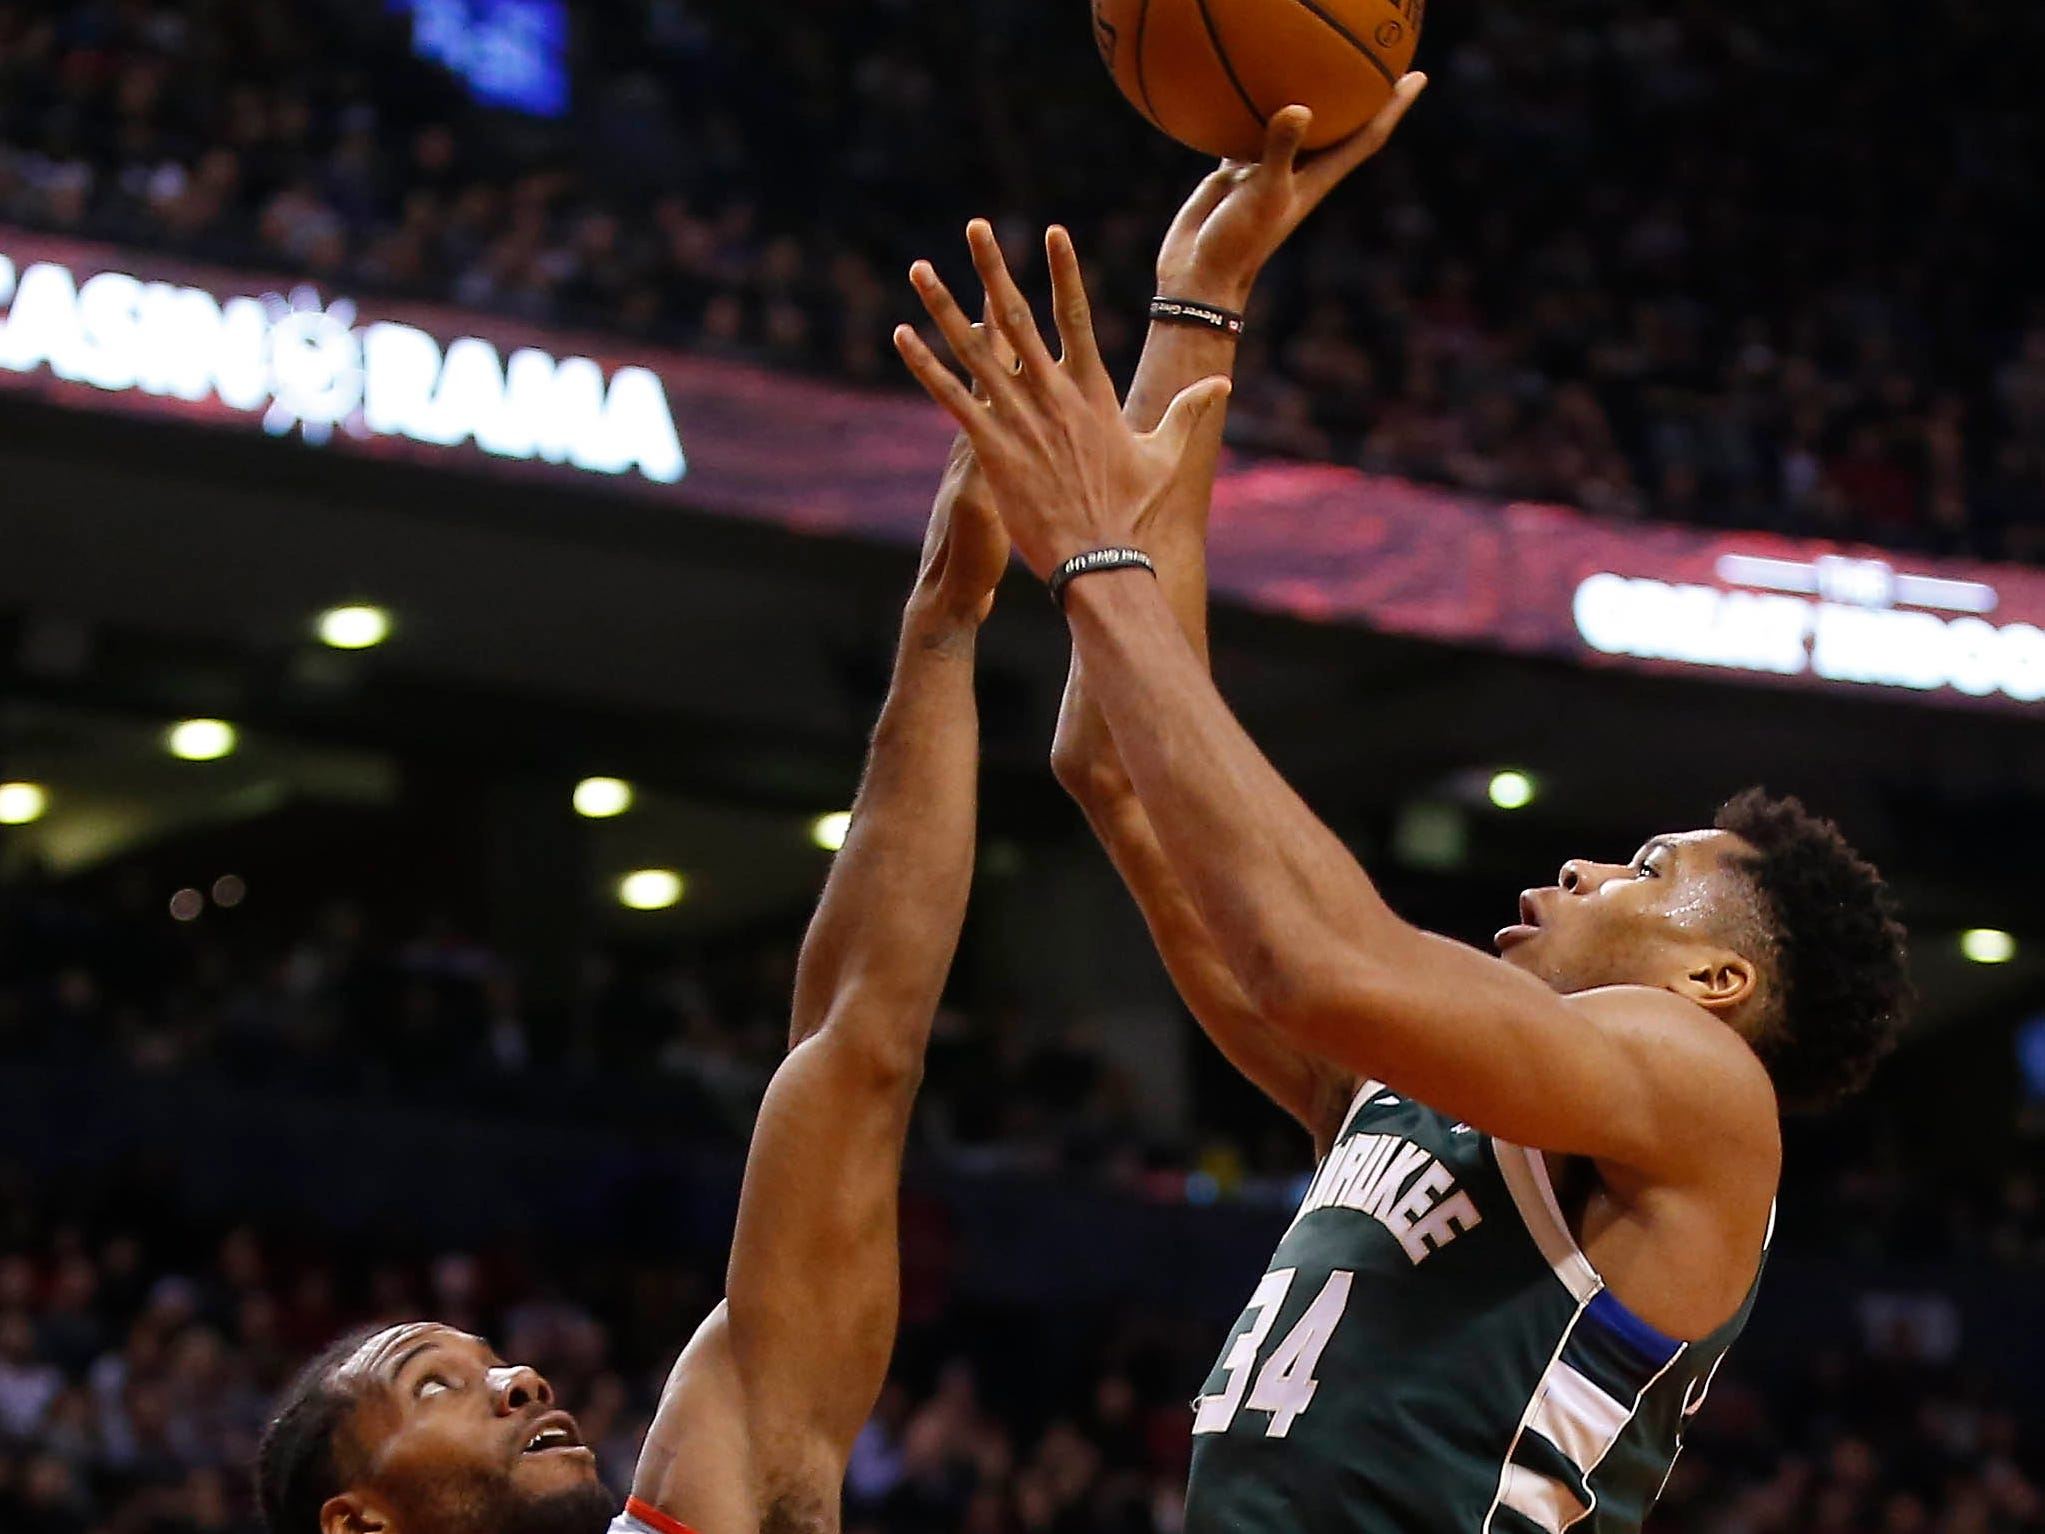 Dec 9, 2018; Toronto, Ontario, CAN; Milwaukee Bucks forward Giannis Antetokounmpo (34) goes up to make a basket against Toronto Raptors forward Kawhi Leonard (2) at Scotiabank Arena. Milwaukee defeated Toronto. Mandatory Credit: John E. Sokolowski-USA TODAY Sports